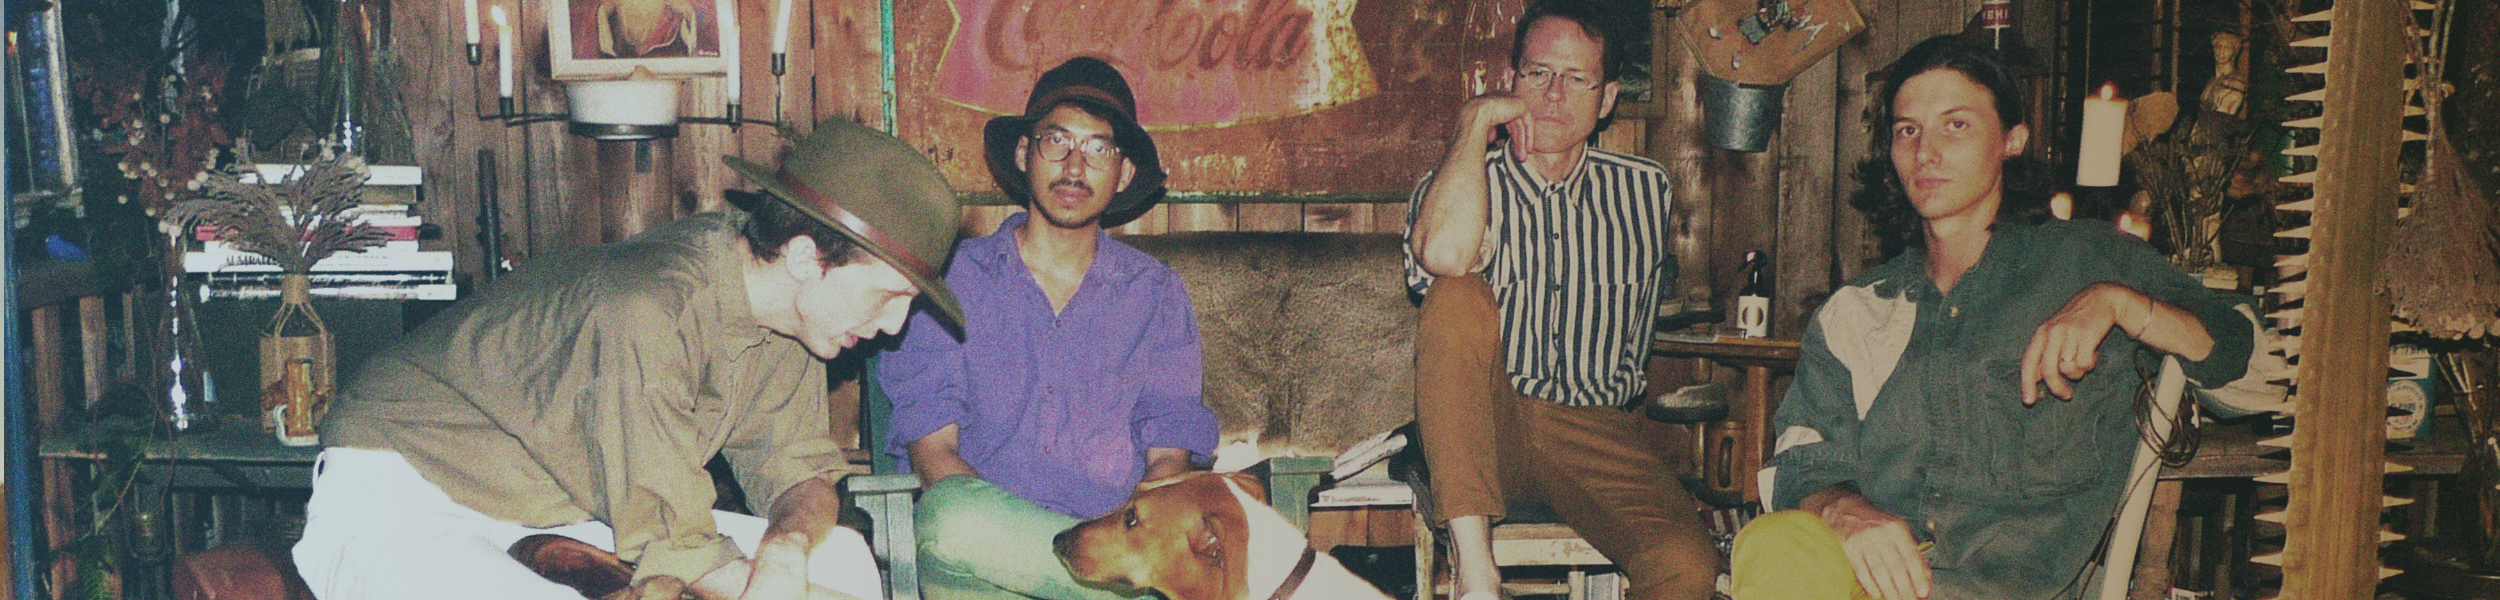 Deerhunter - Deerhunter Reveal video for 'Helicopter'